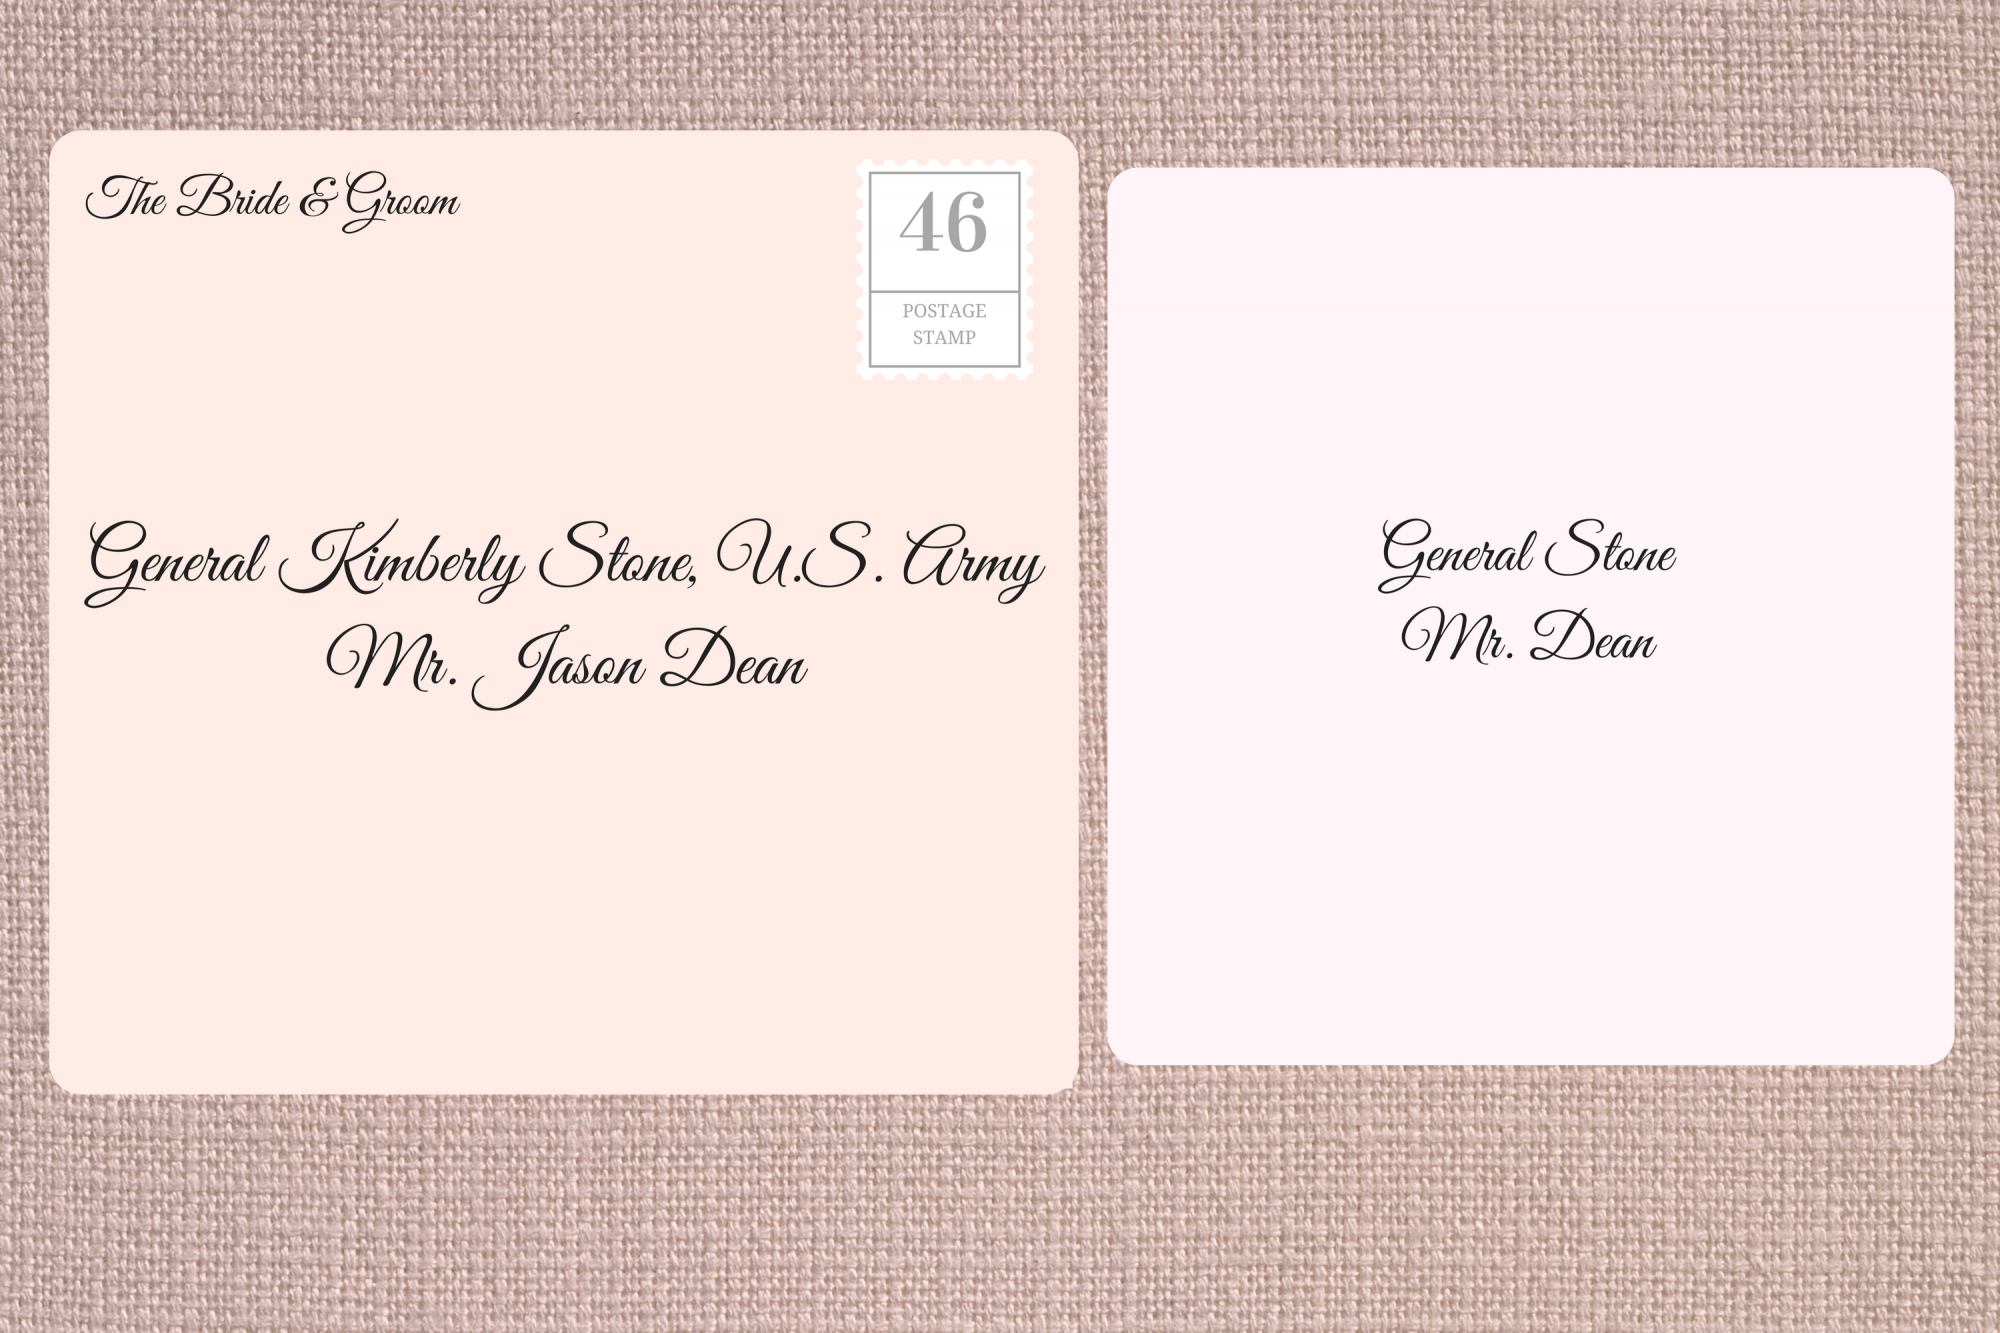 Addressing Double Envelope Wedding Invitations to Female Military Office